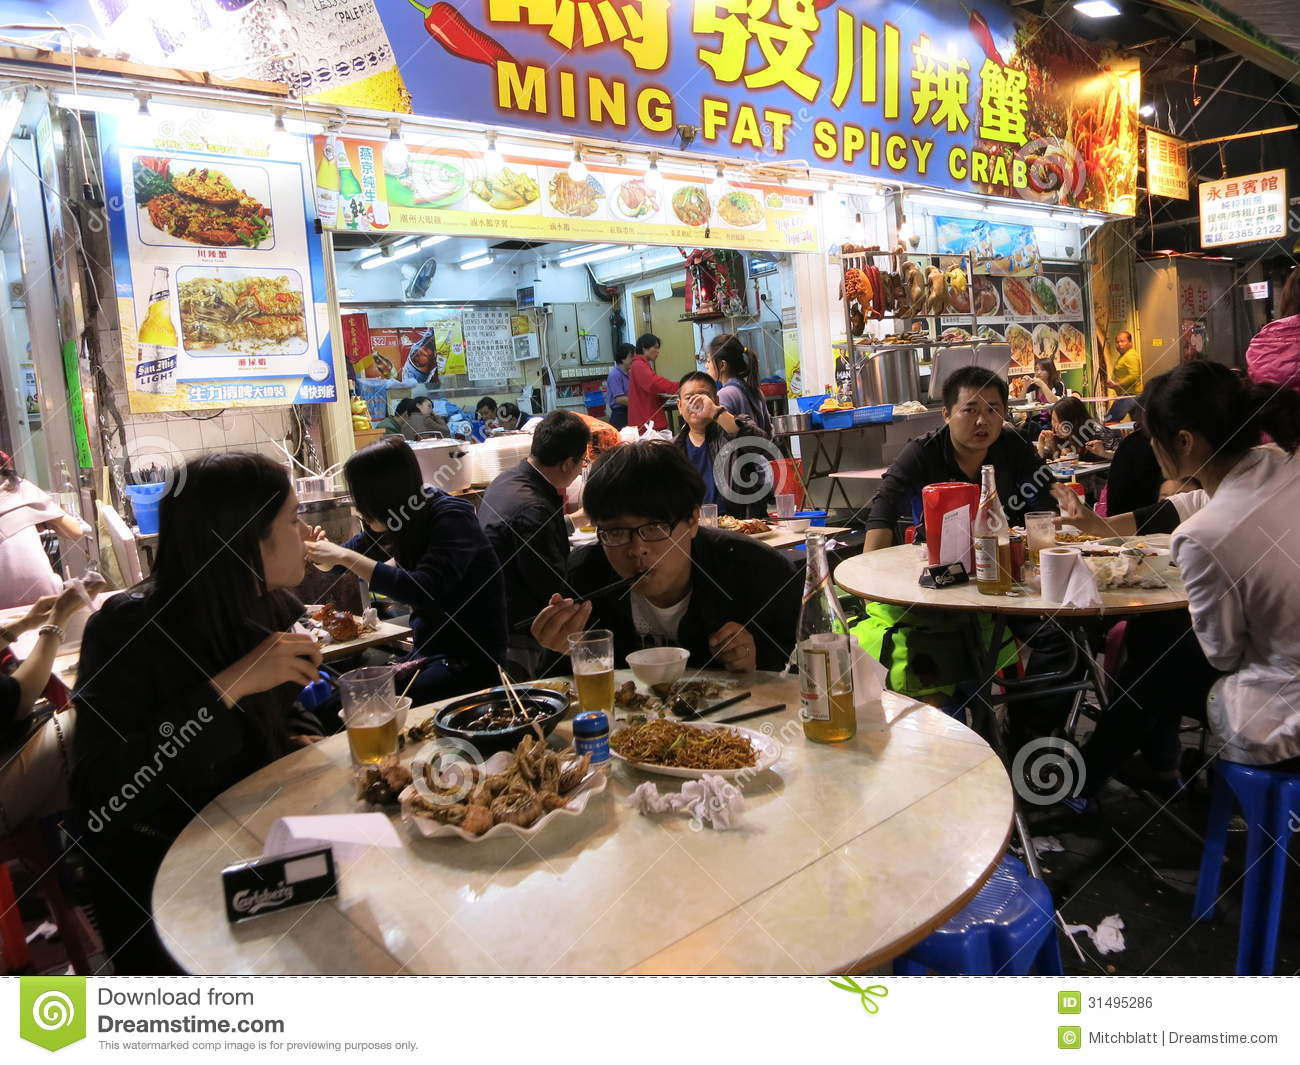 Eating Spicy Crab At A Night Market Editorial Photo  : eating spicy crab night market march hong kong people eat outside restaurant temple street hong kong 31495286 from www.dreamstime.com size 1300 x 1065 jpeg 226kB